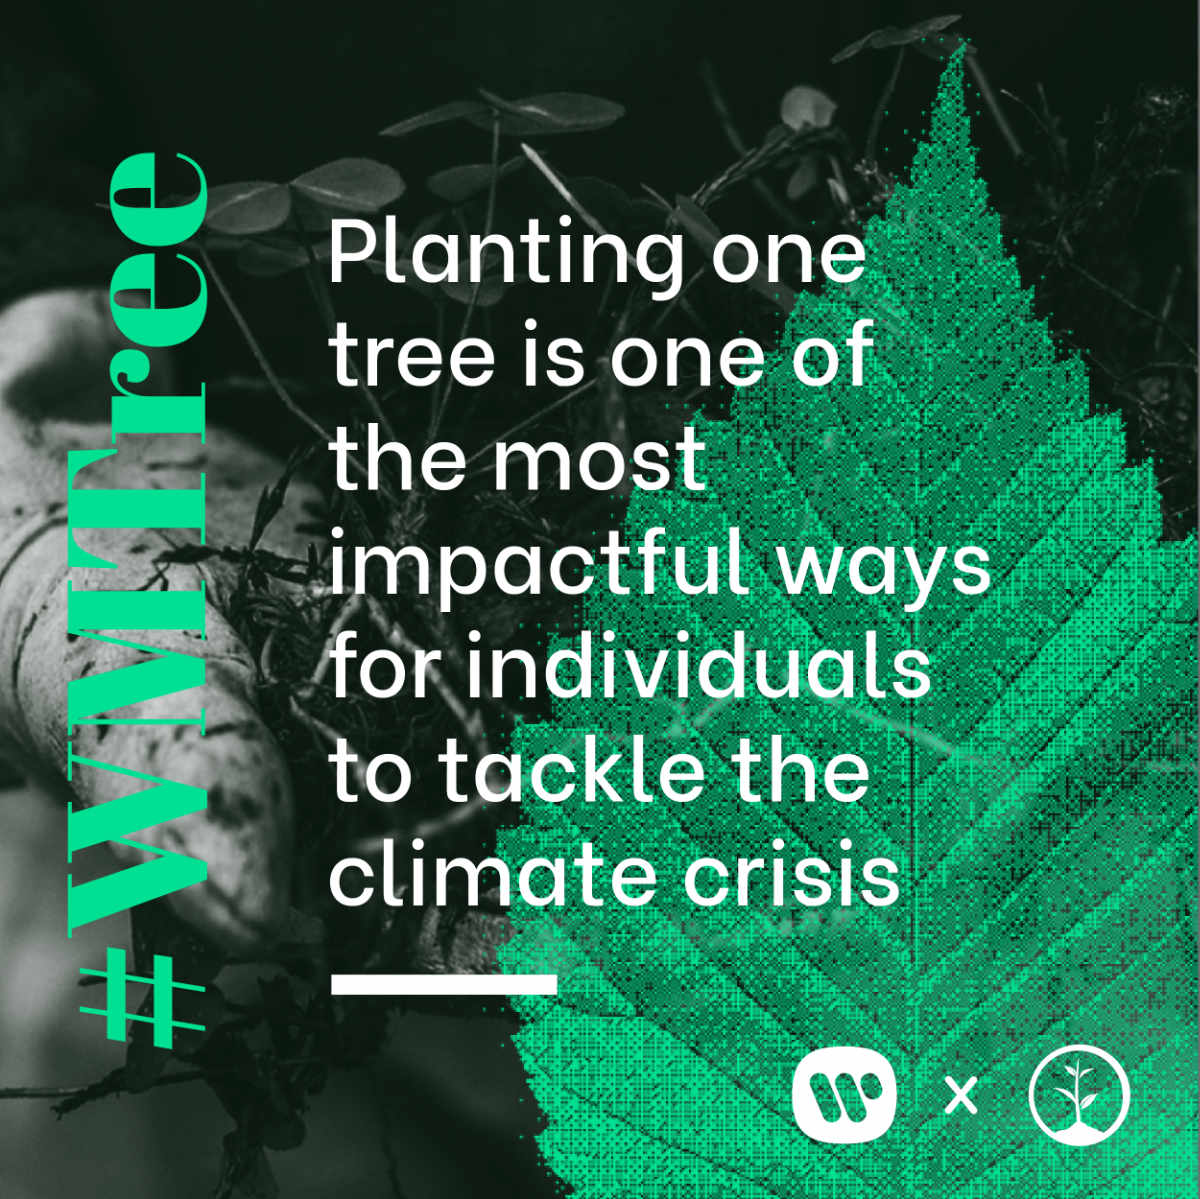 Planting one tree is one of the most impactful ways for individuals to tackle the climate crisis